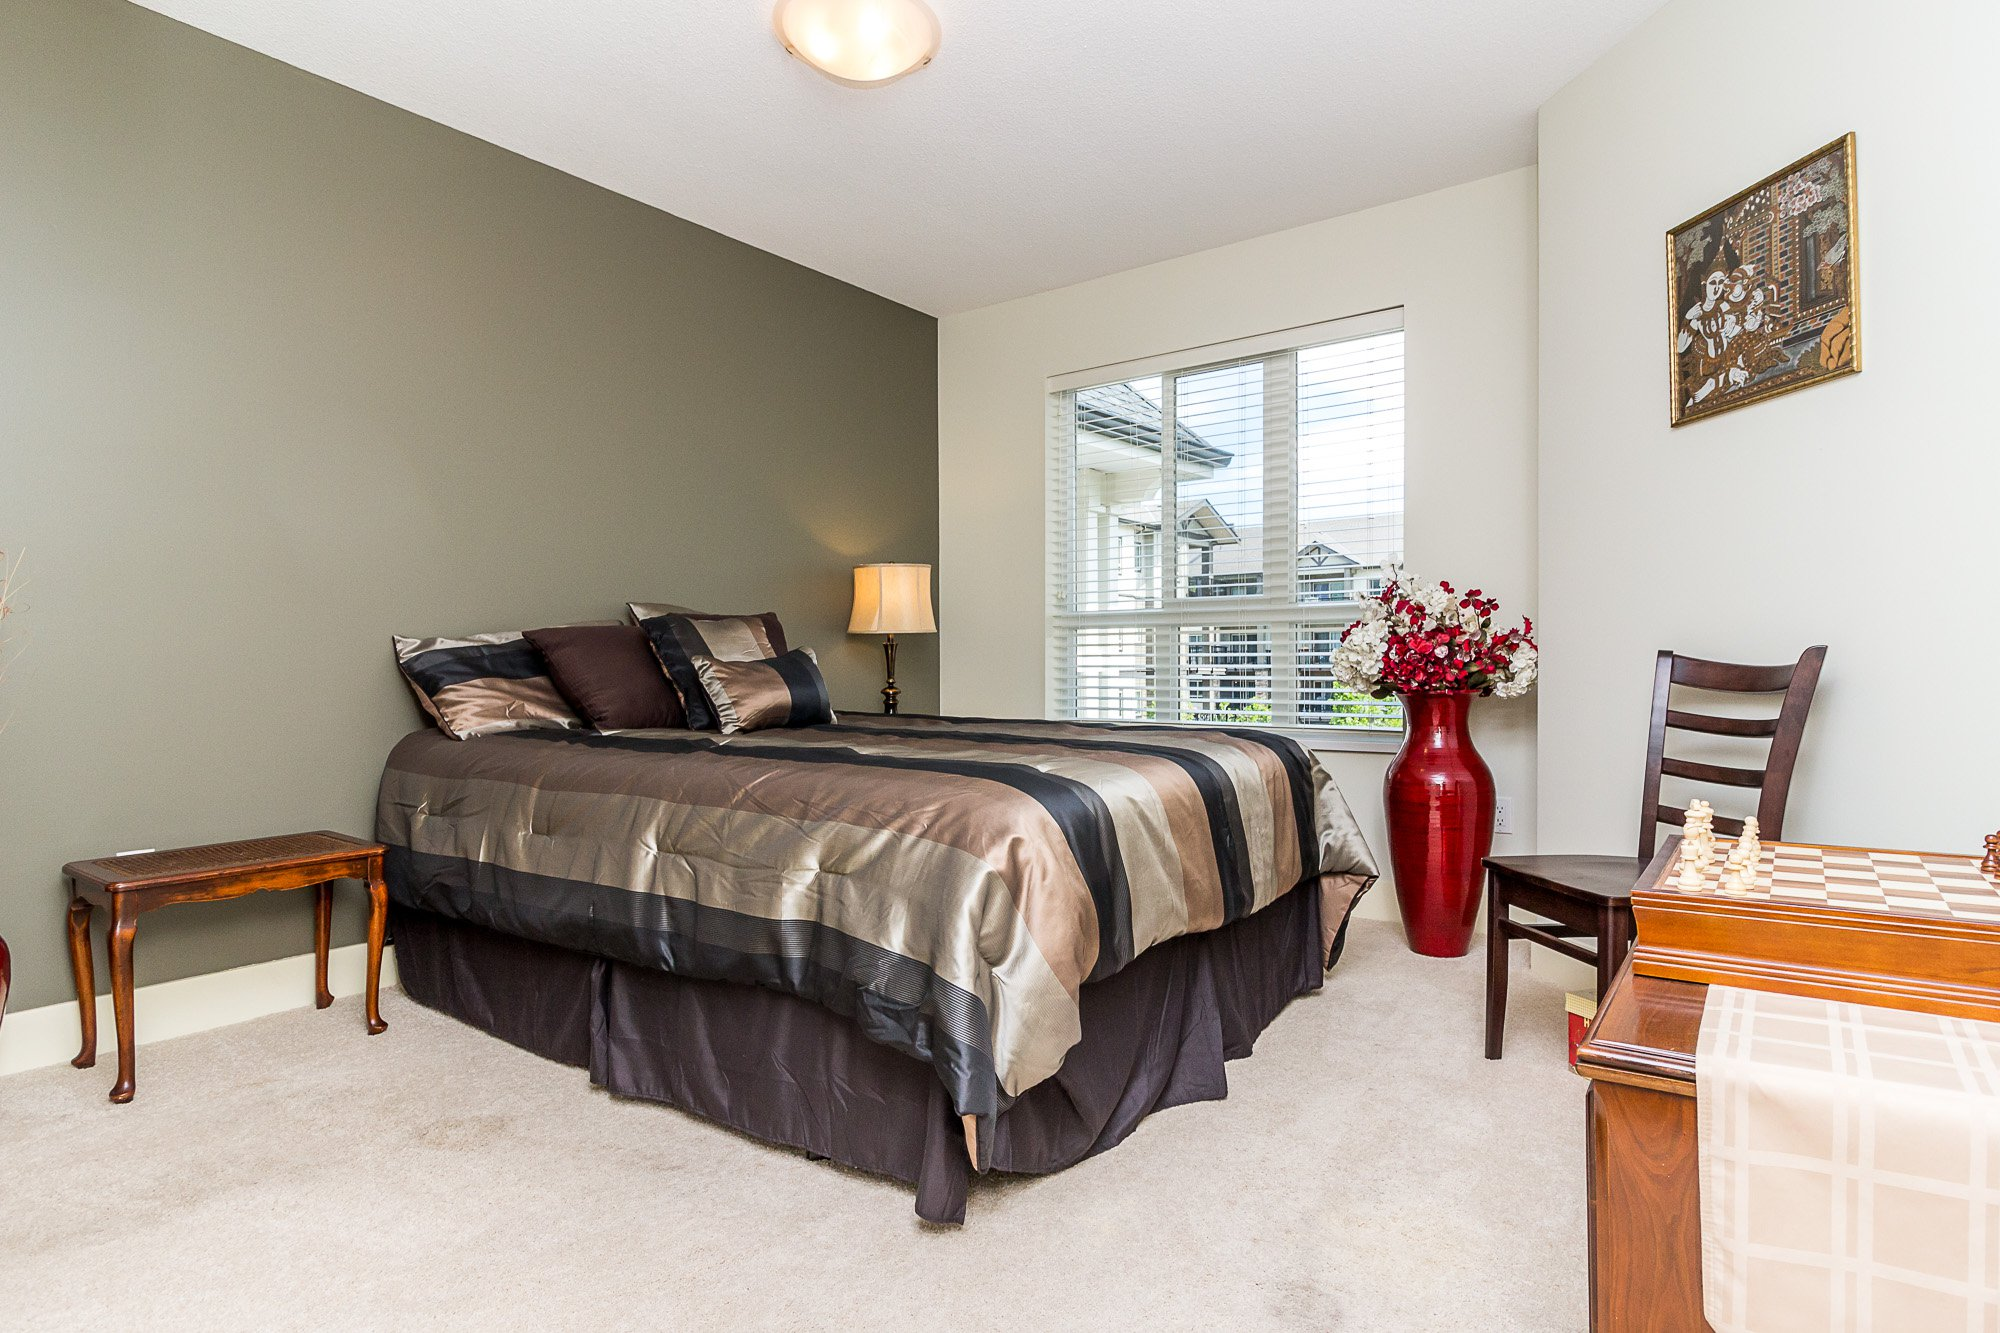 """Photo 22: Photos: 412 22022 49 Avenue in Langley: Murrayville Condo for sale in """"Murray Green"""" : MLS®# R2266359"""